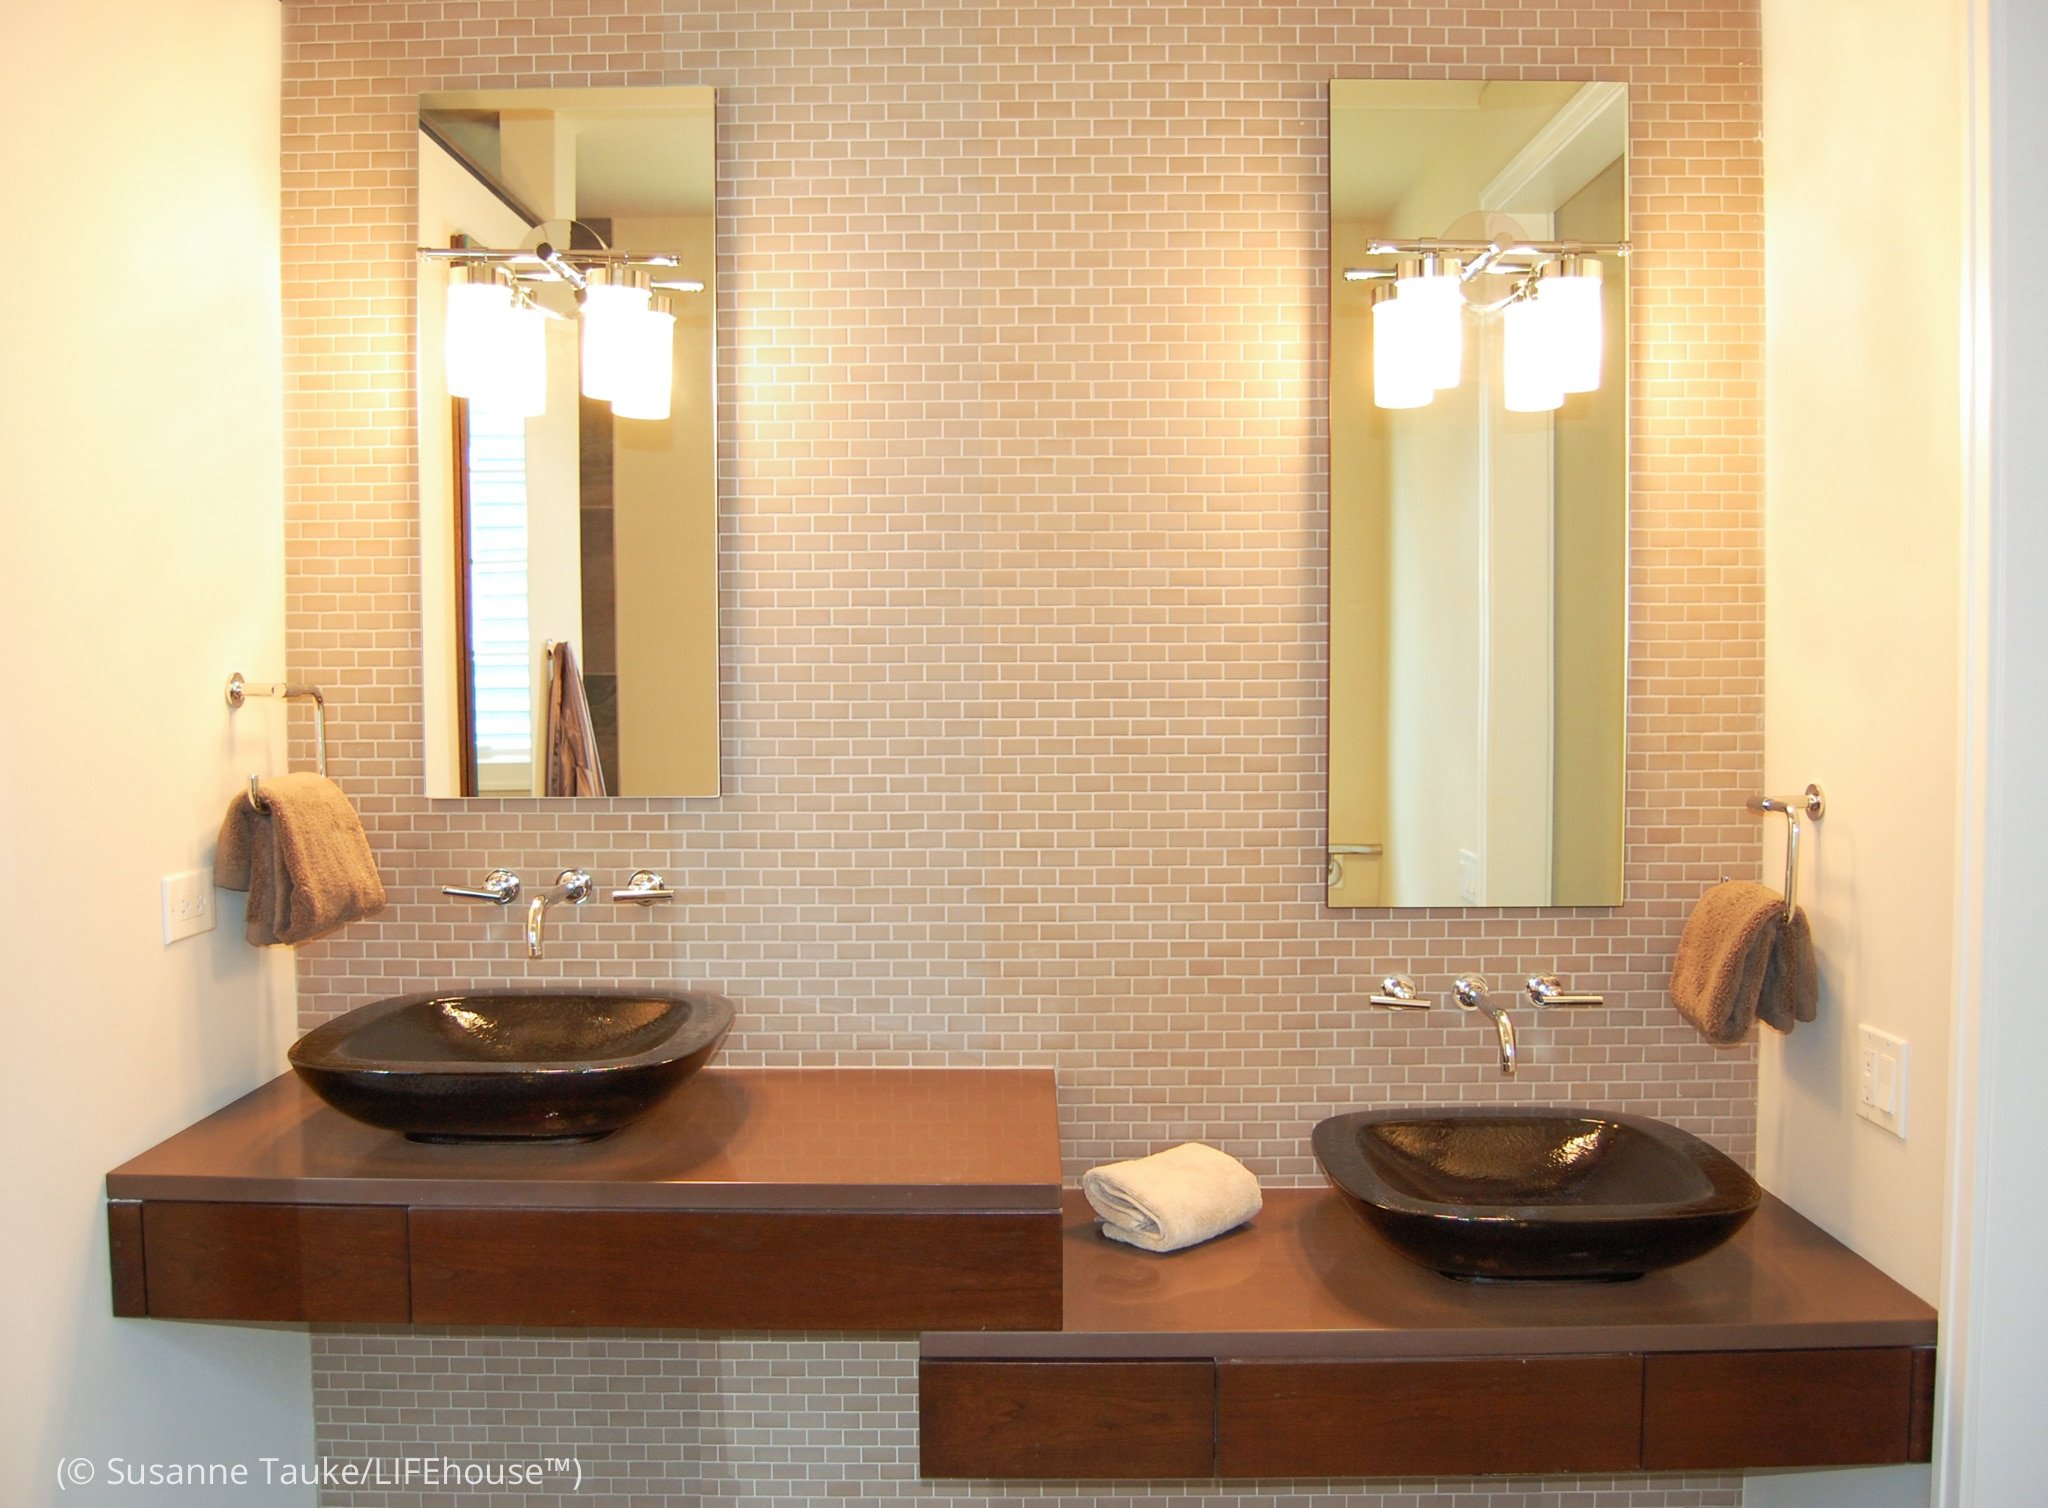 Two bathroom vanities at different levels (© Susanne Tauke/LIFEhouse™)